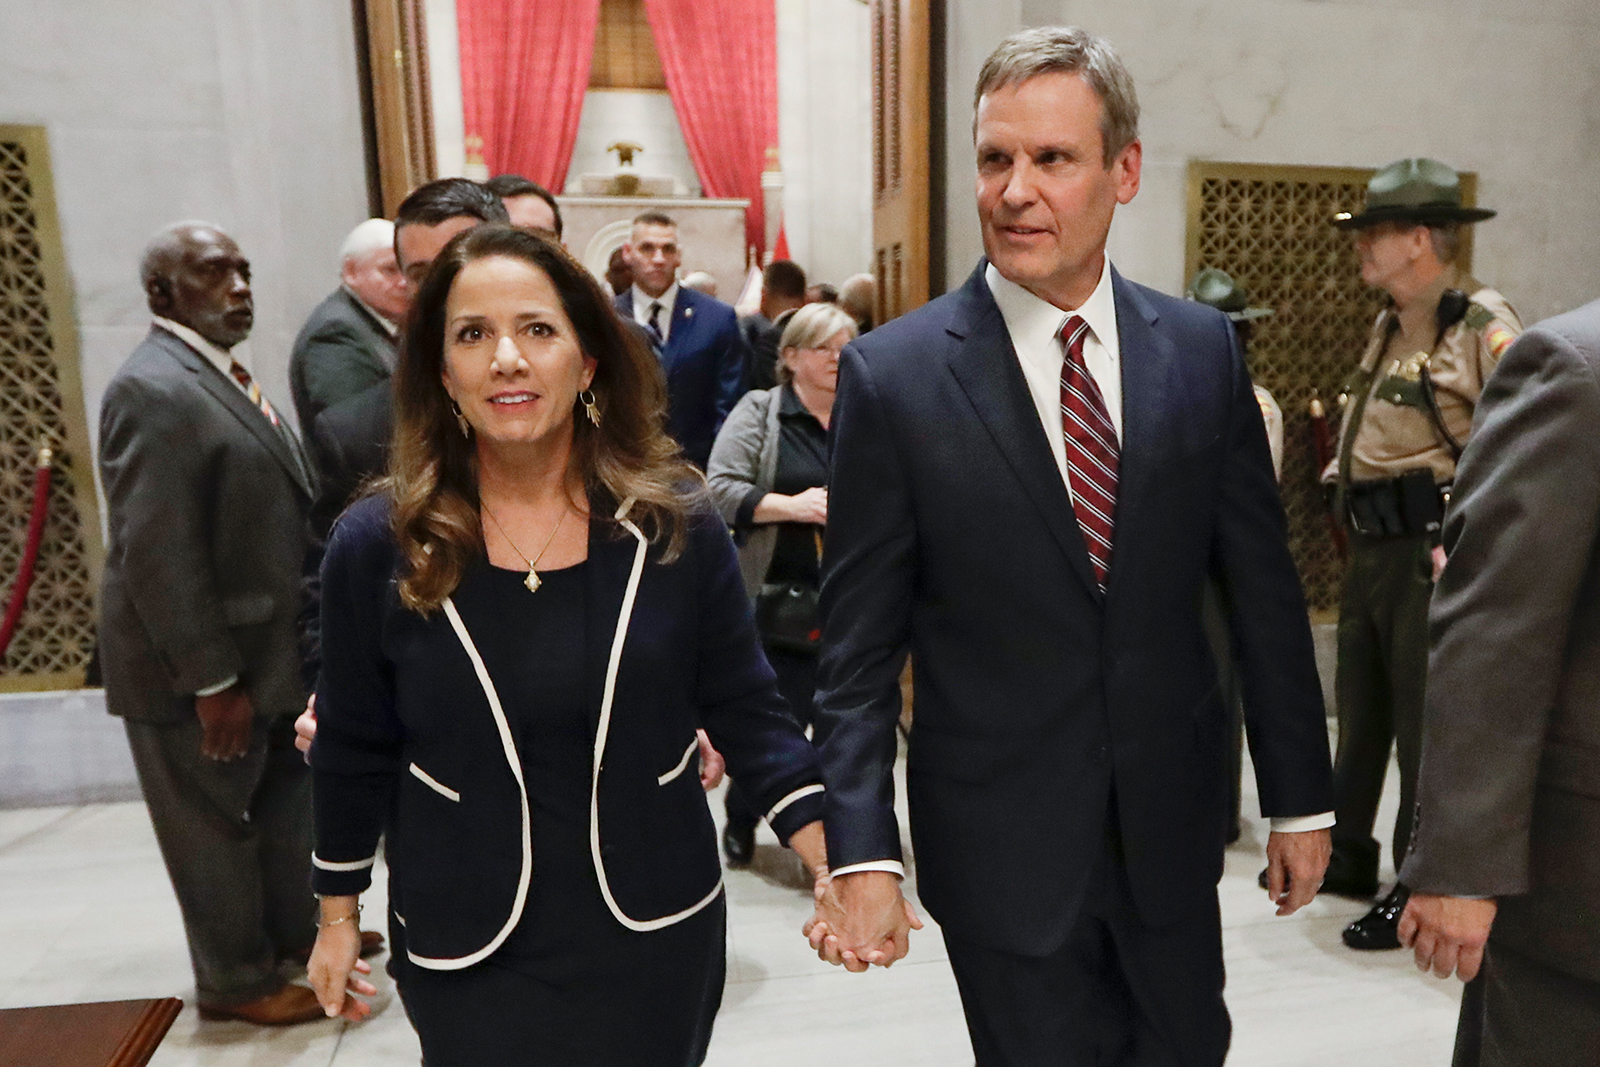 Tennessee Gov. Bill Lee, center, and his wife, Maria, leave the House Chamber after Lee gave his State of the State Address in Nashville, on February 3.